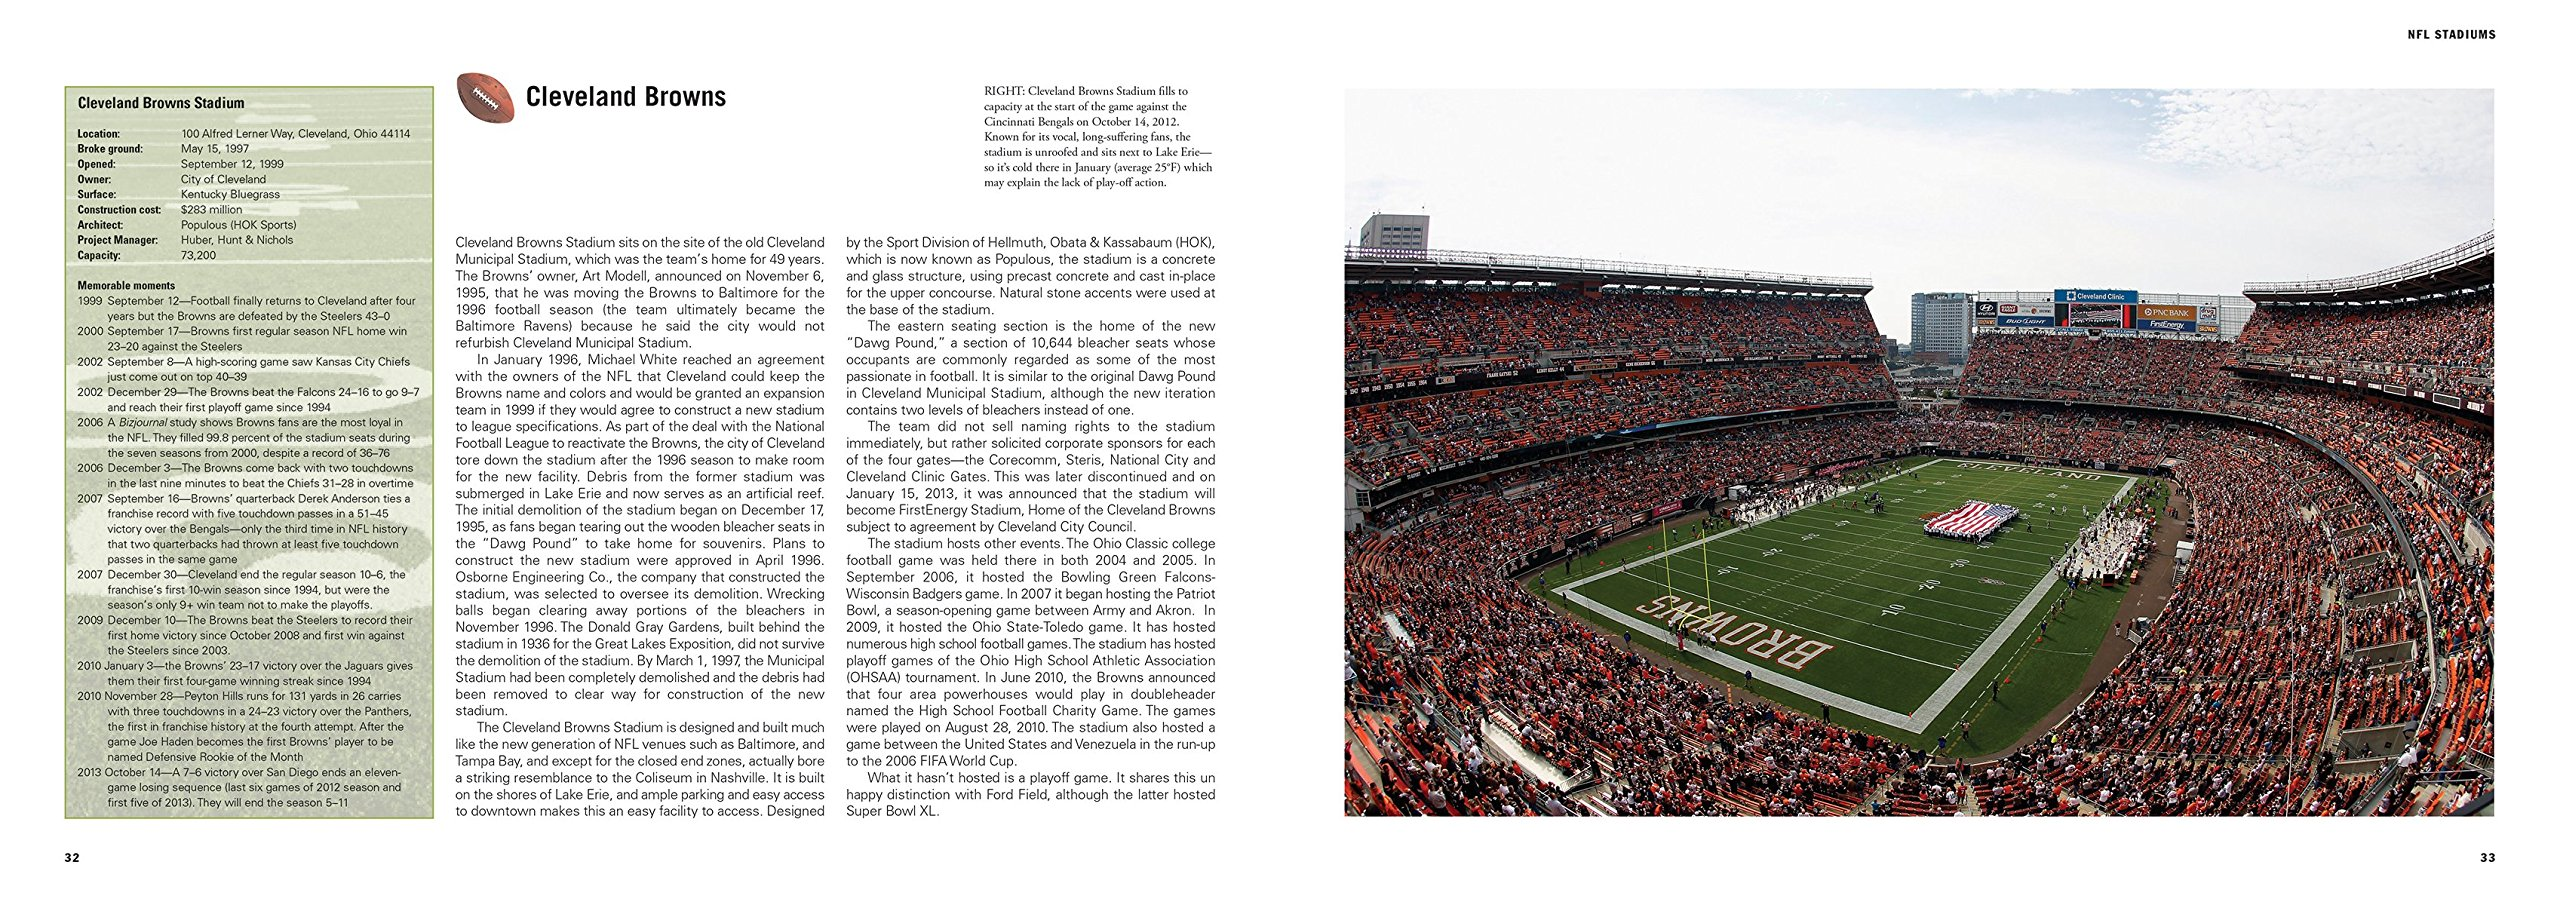 Football Stadiums: A Guide to Professional and Top College